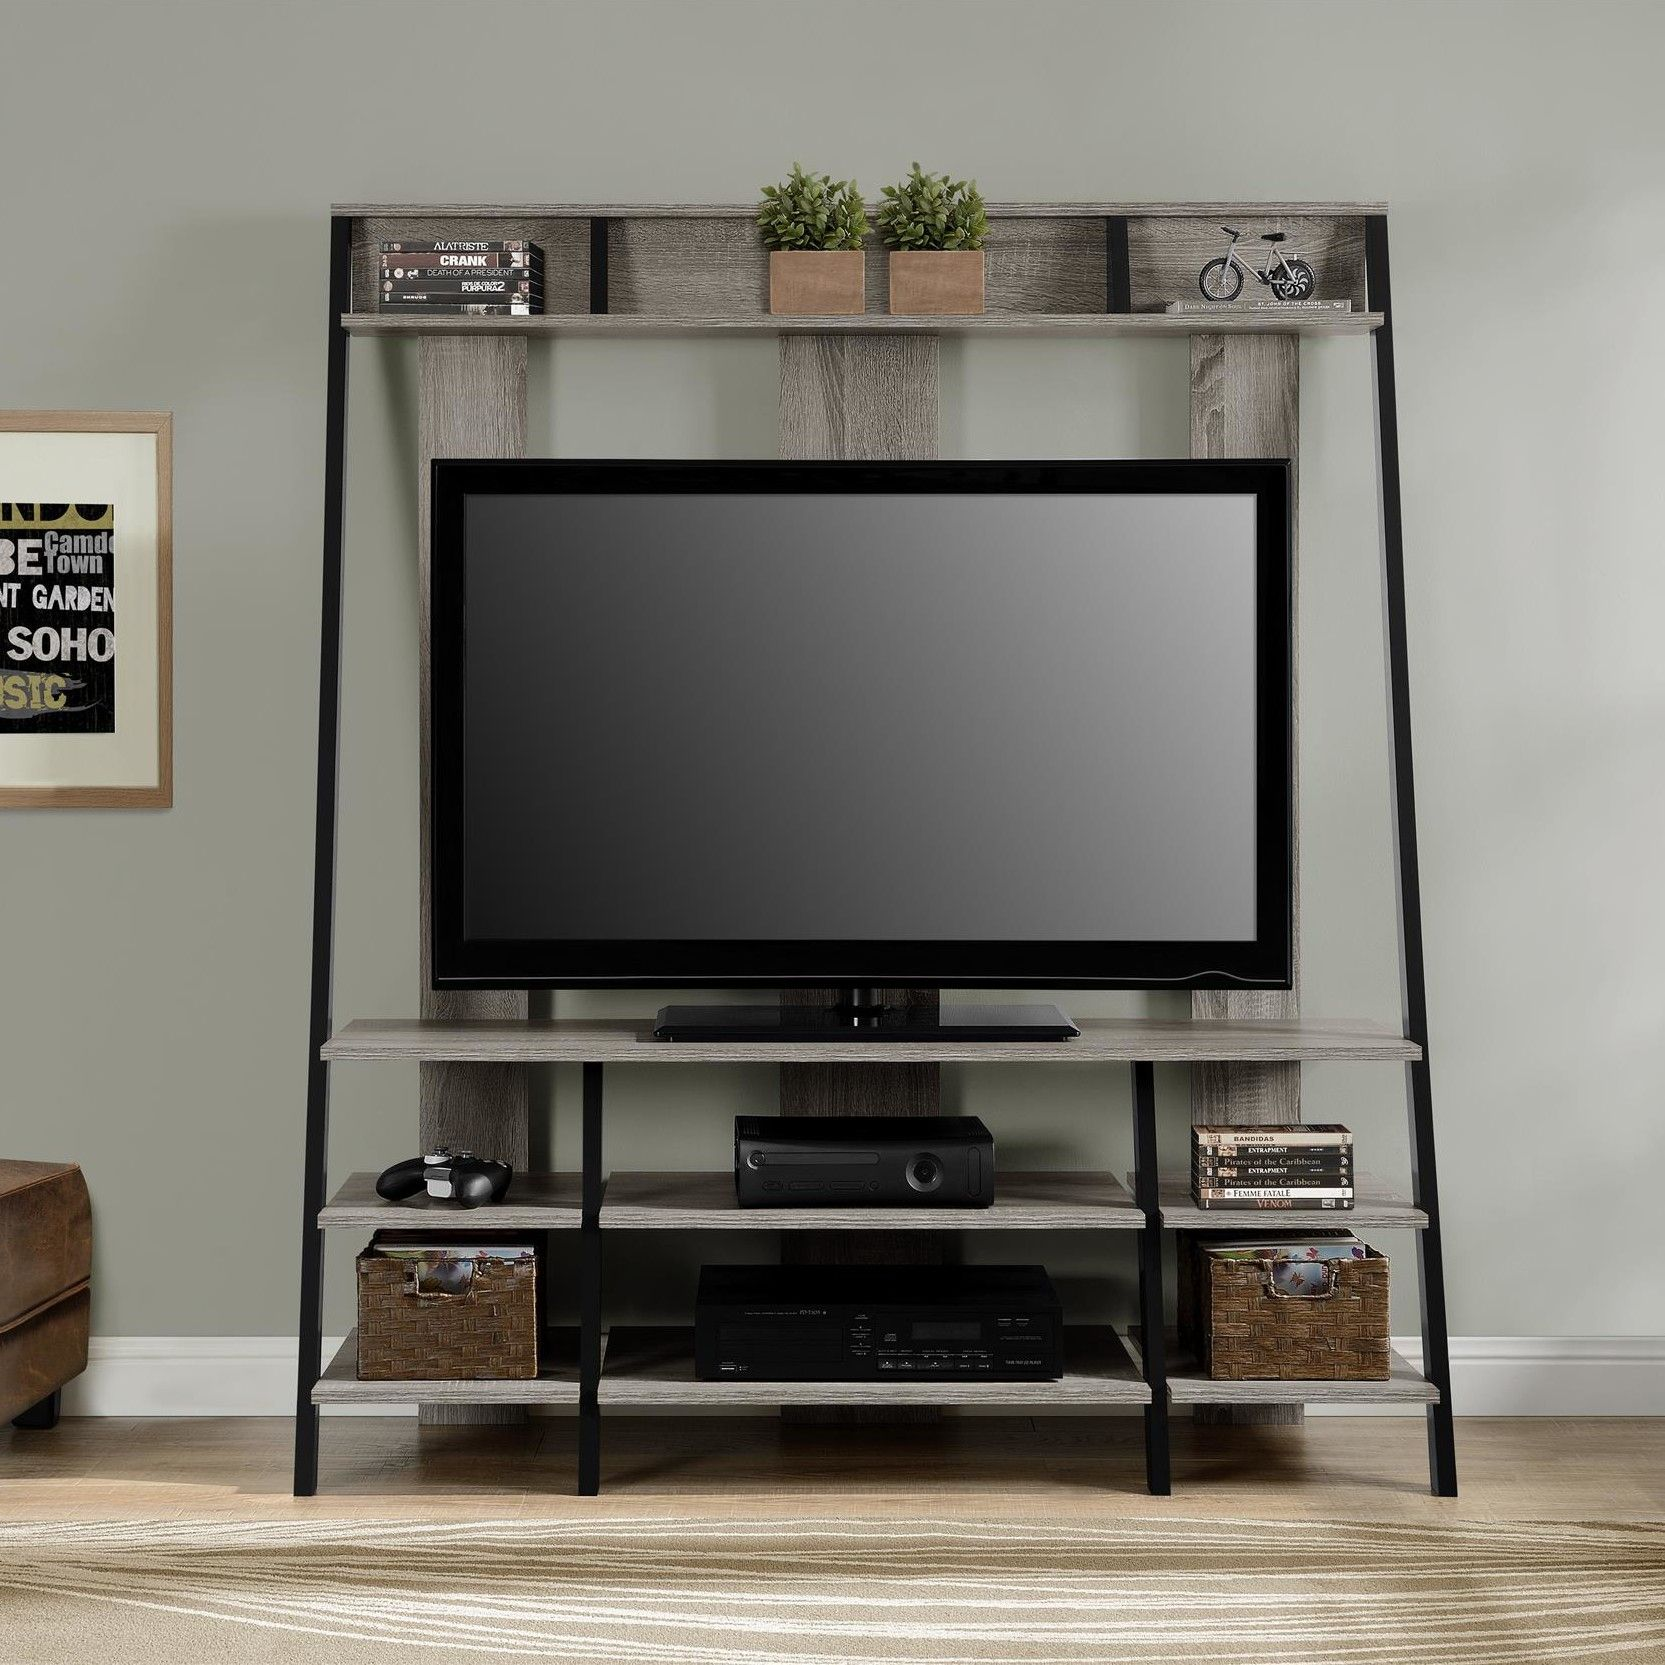 "Features:  -Upper storage shelves.  -Lower storage shelves hold av components.  TV Size Accommodated: -48"".  Product Type: -Entertainment Center.  Design: -Open shelving.  Finish: -Sonoma oak.  Frame"